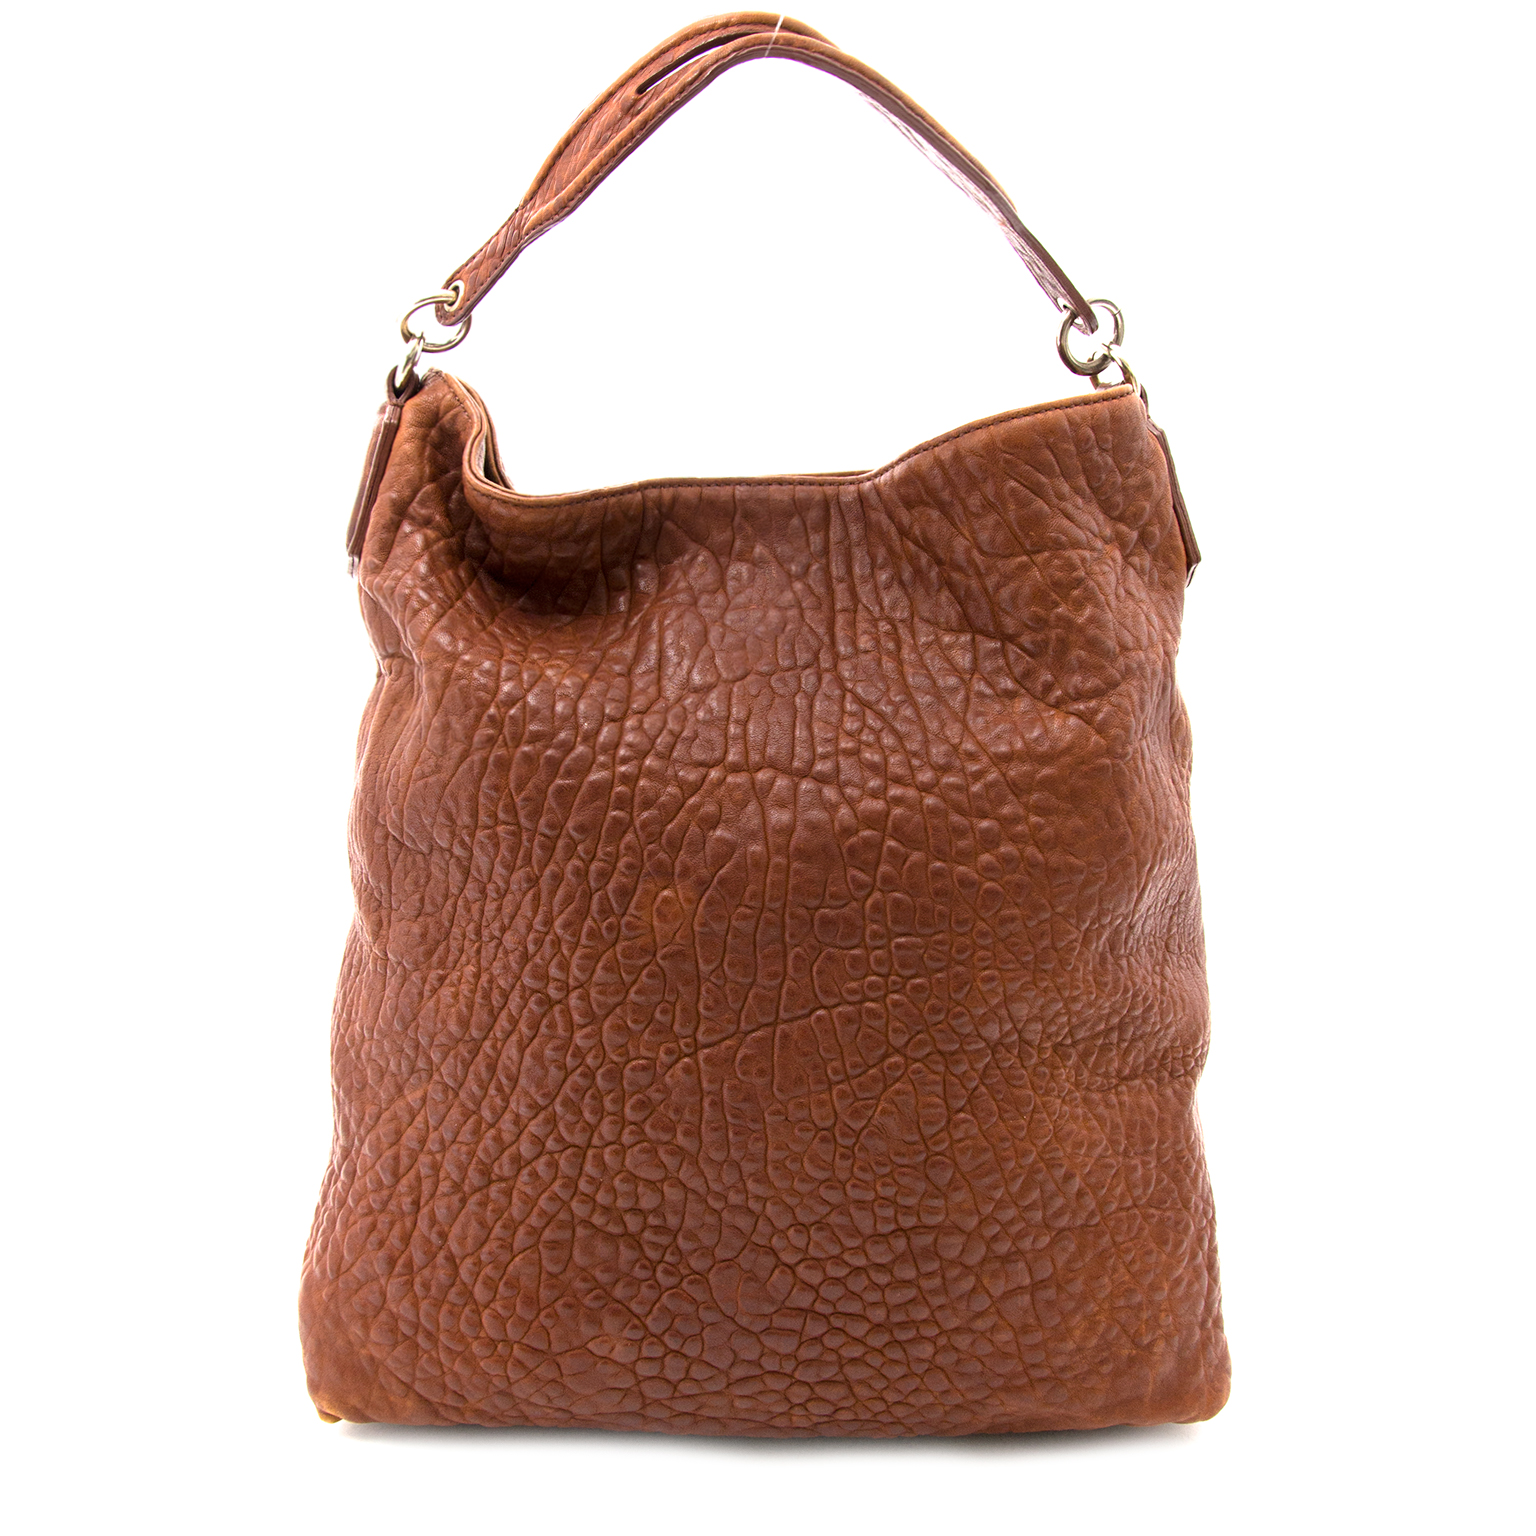 Are you looking for an Alexander Wang Chocolate Brown Darcy Bag? Shop safe and secure at Labellov.com